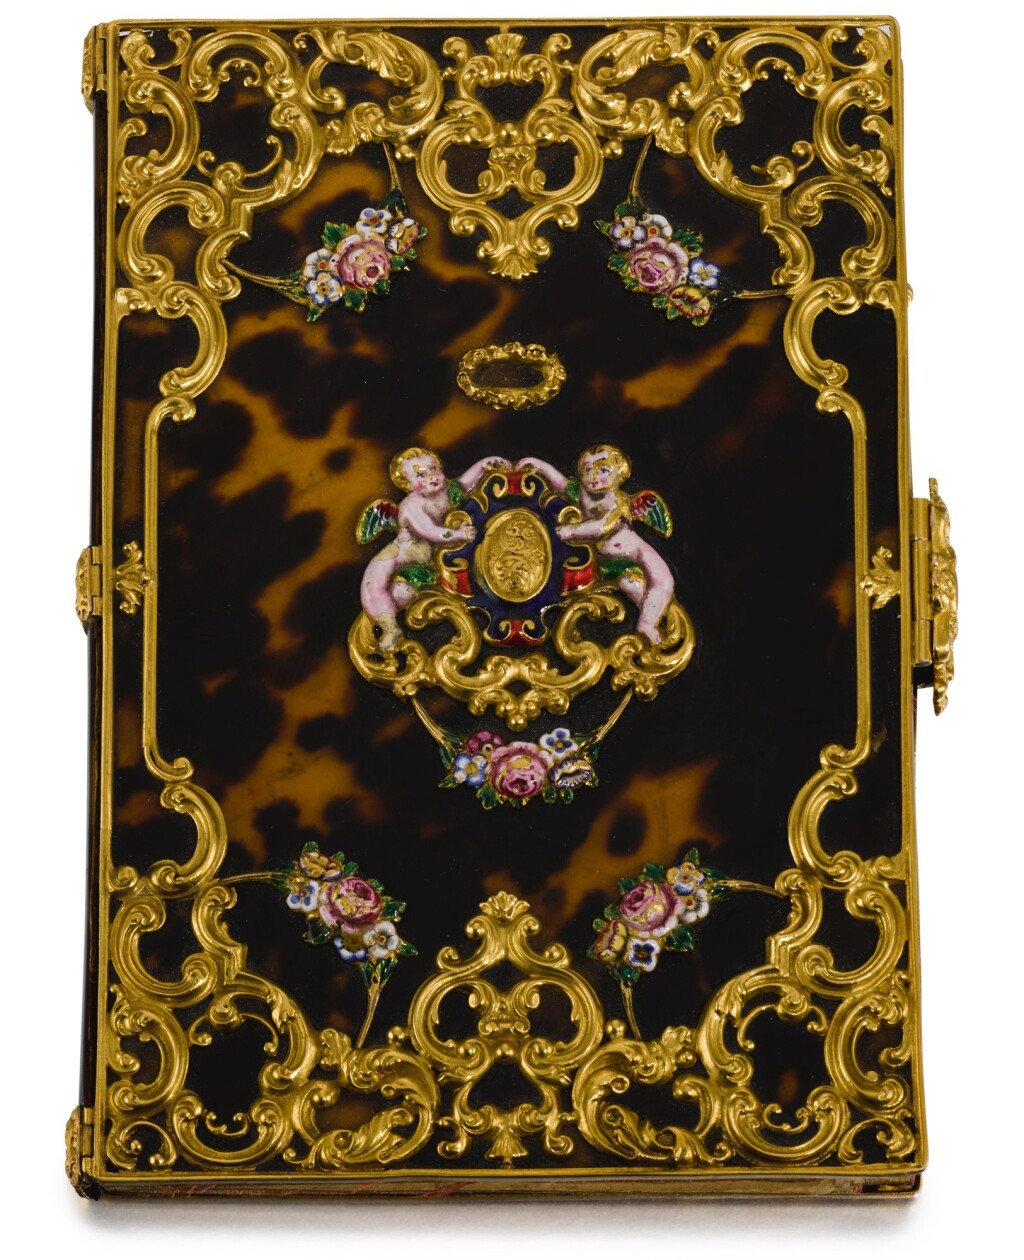 A TORTOISESHELL-COVERED NOTEBOOK WITH GOLD AND ENAMEL MOUNTS, UNMARKED, ENGLISH, CIRCA 1835